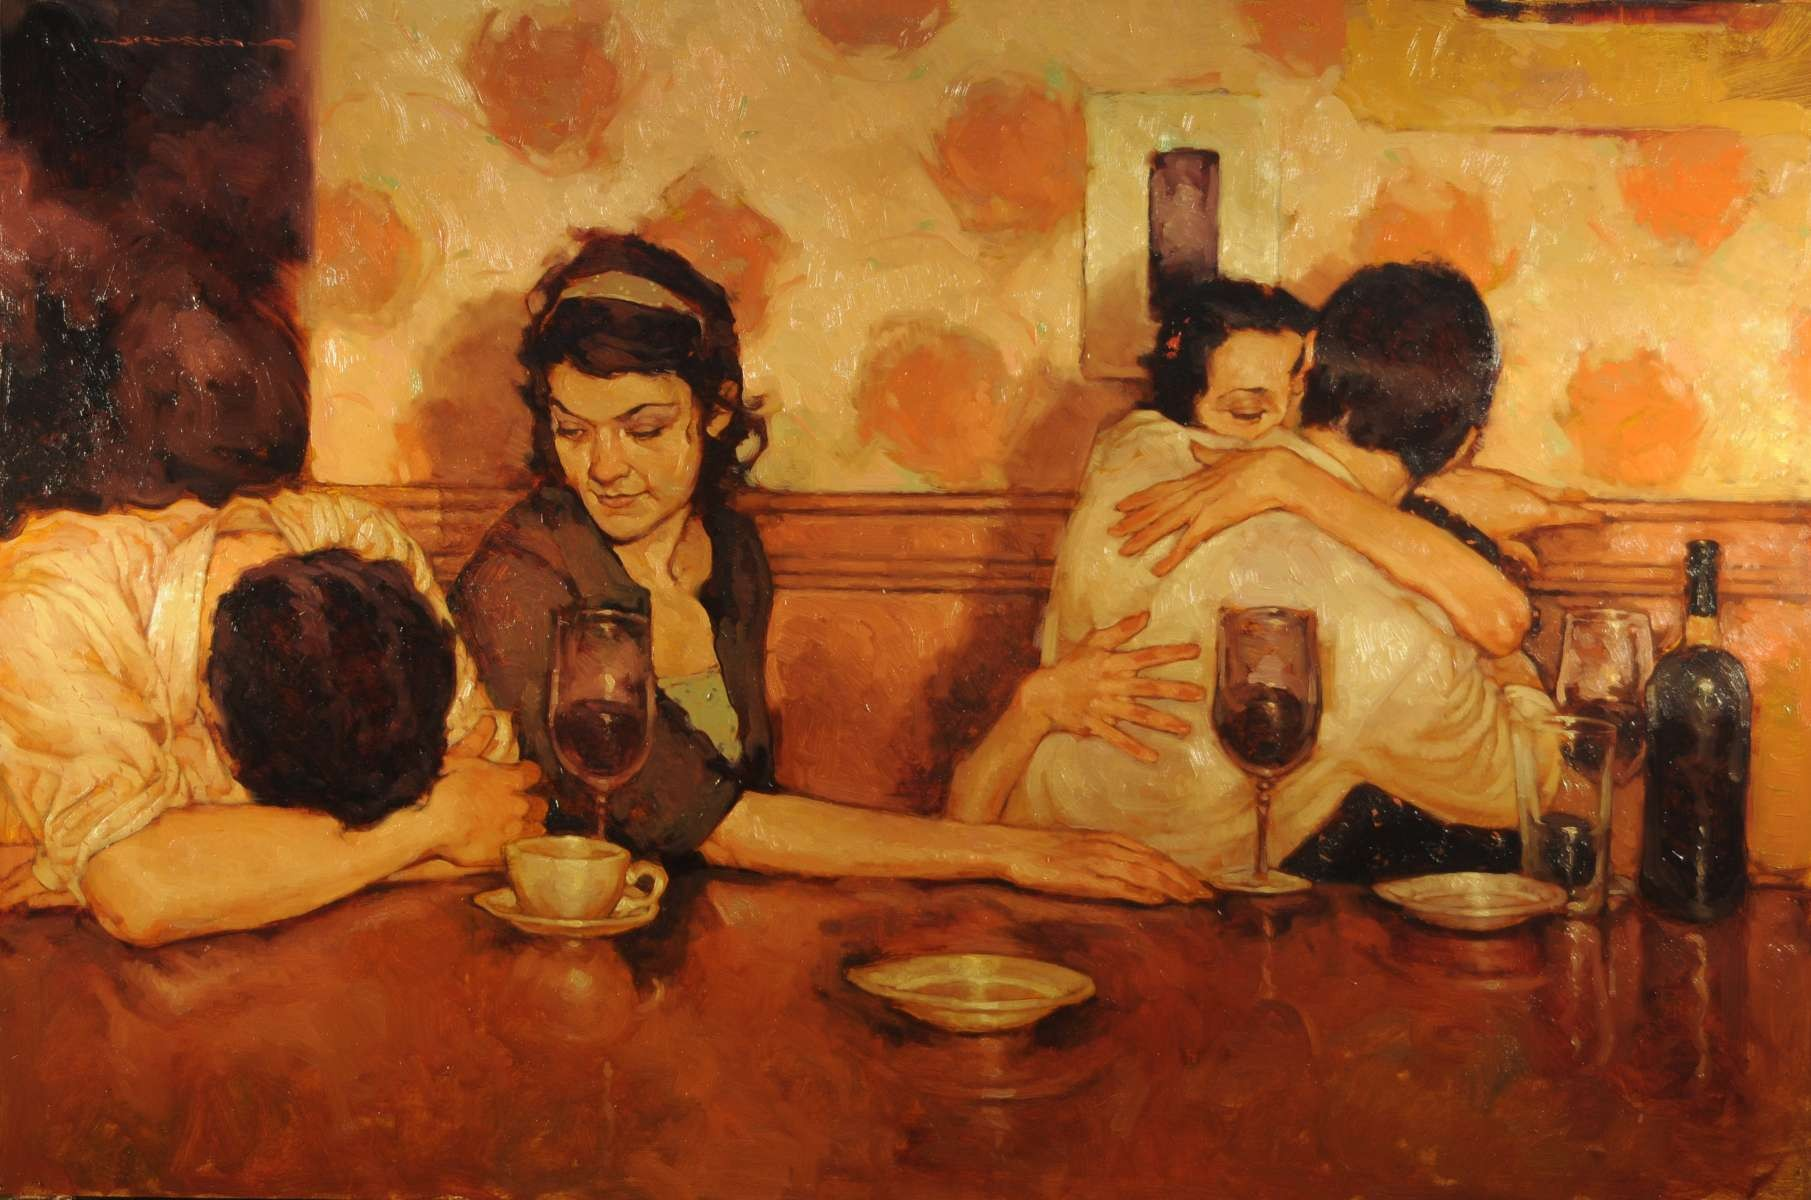 painting by Joseph Lorusso